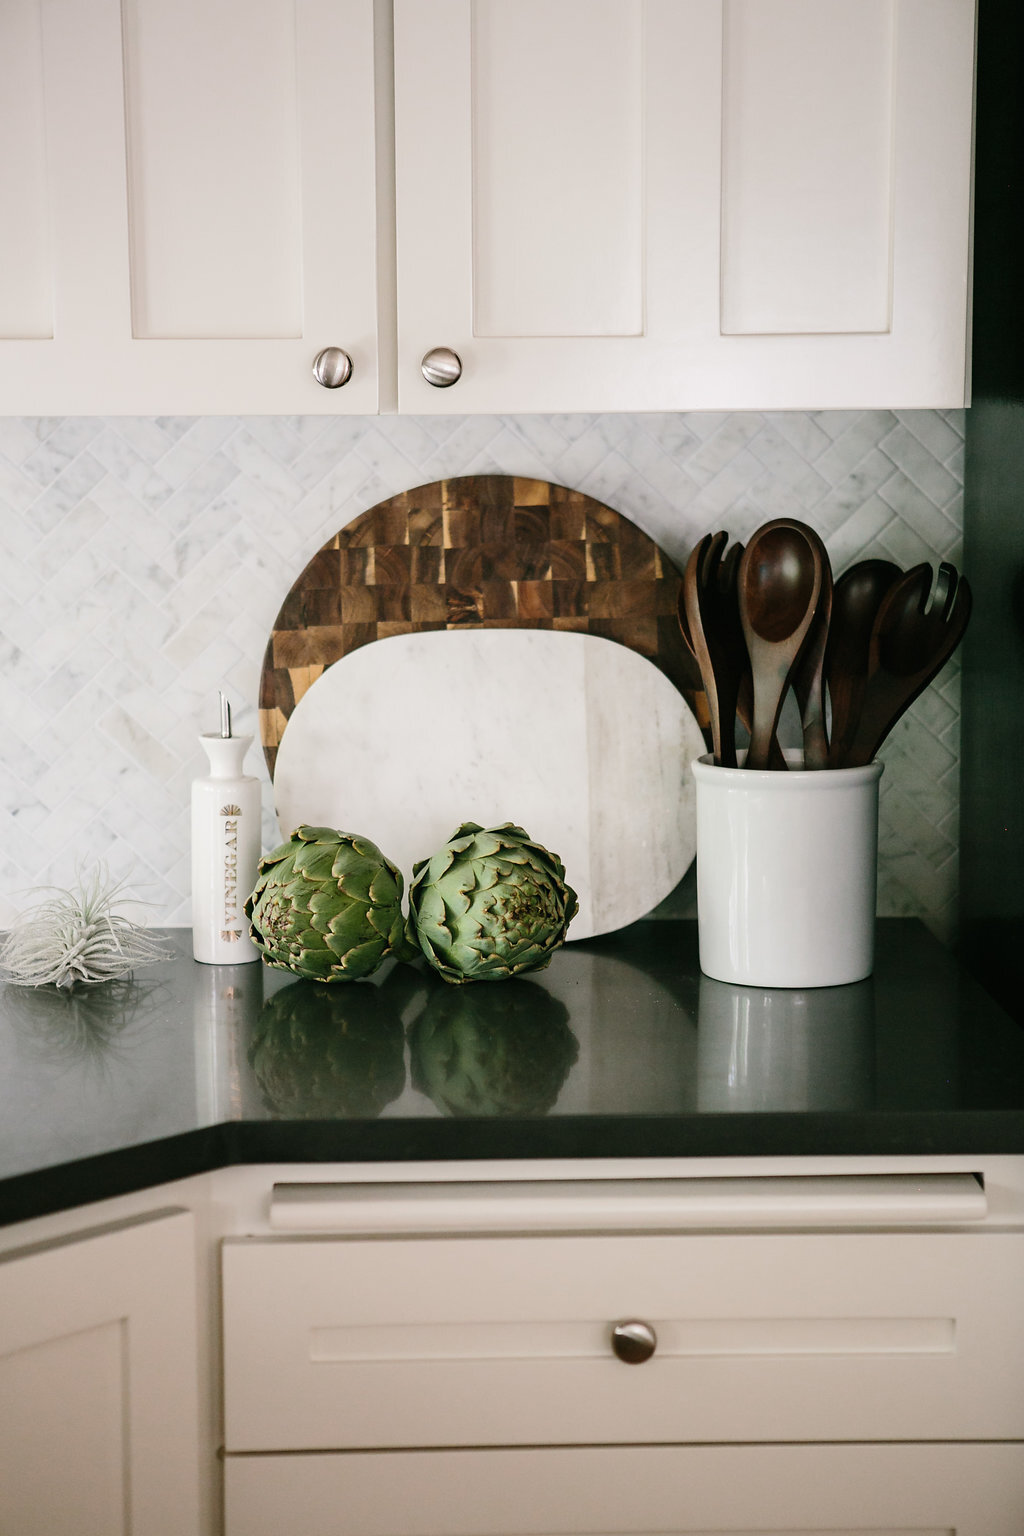 How To Place Cabinet Knobs According, Knobs For Bathroom Cabinet Doors